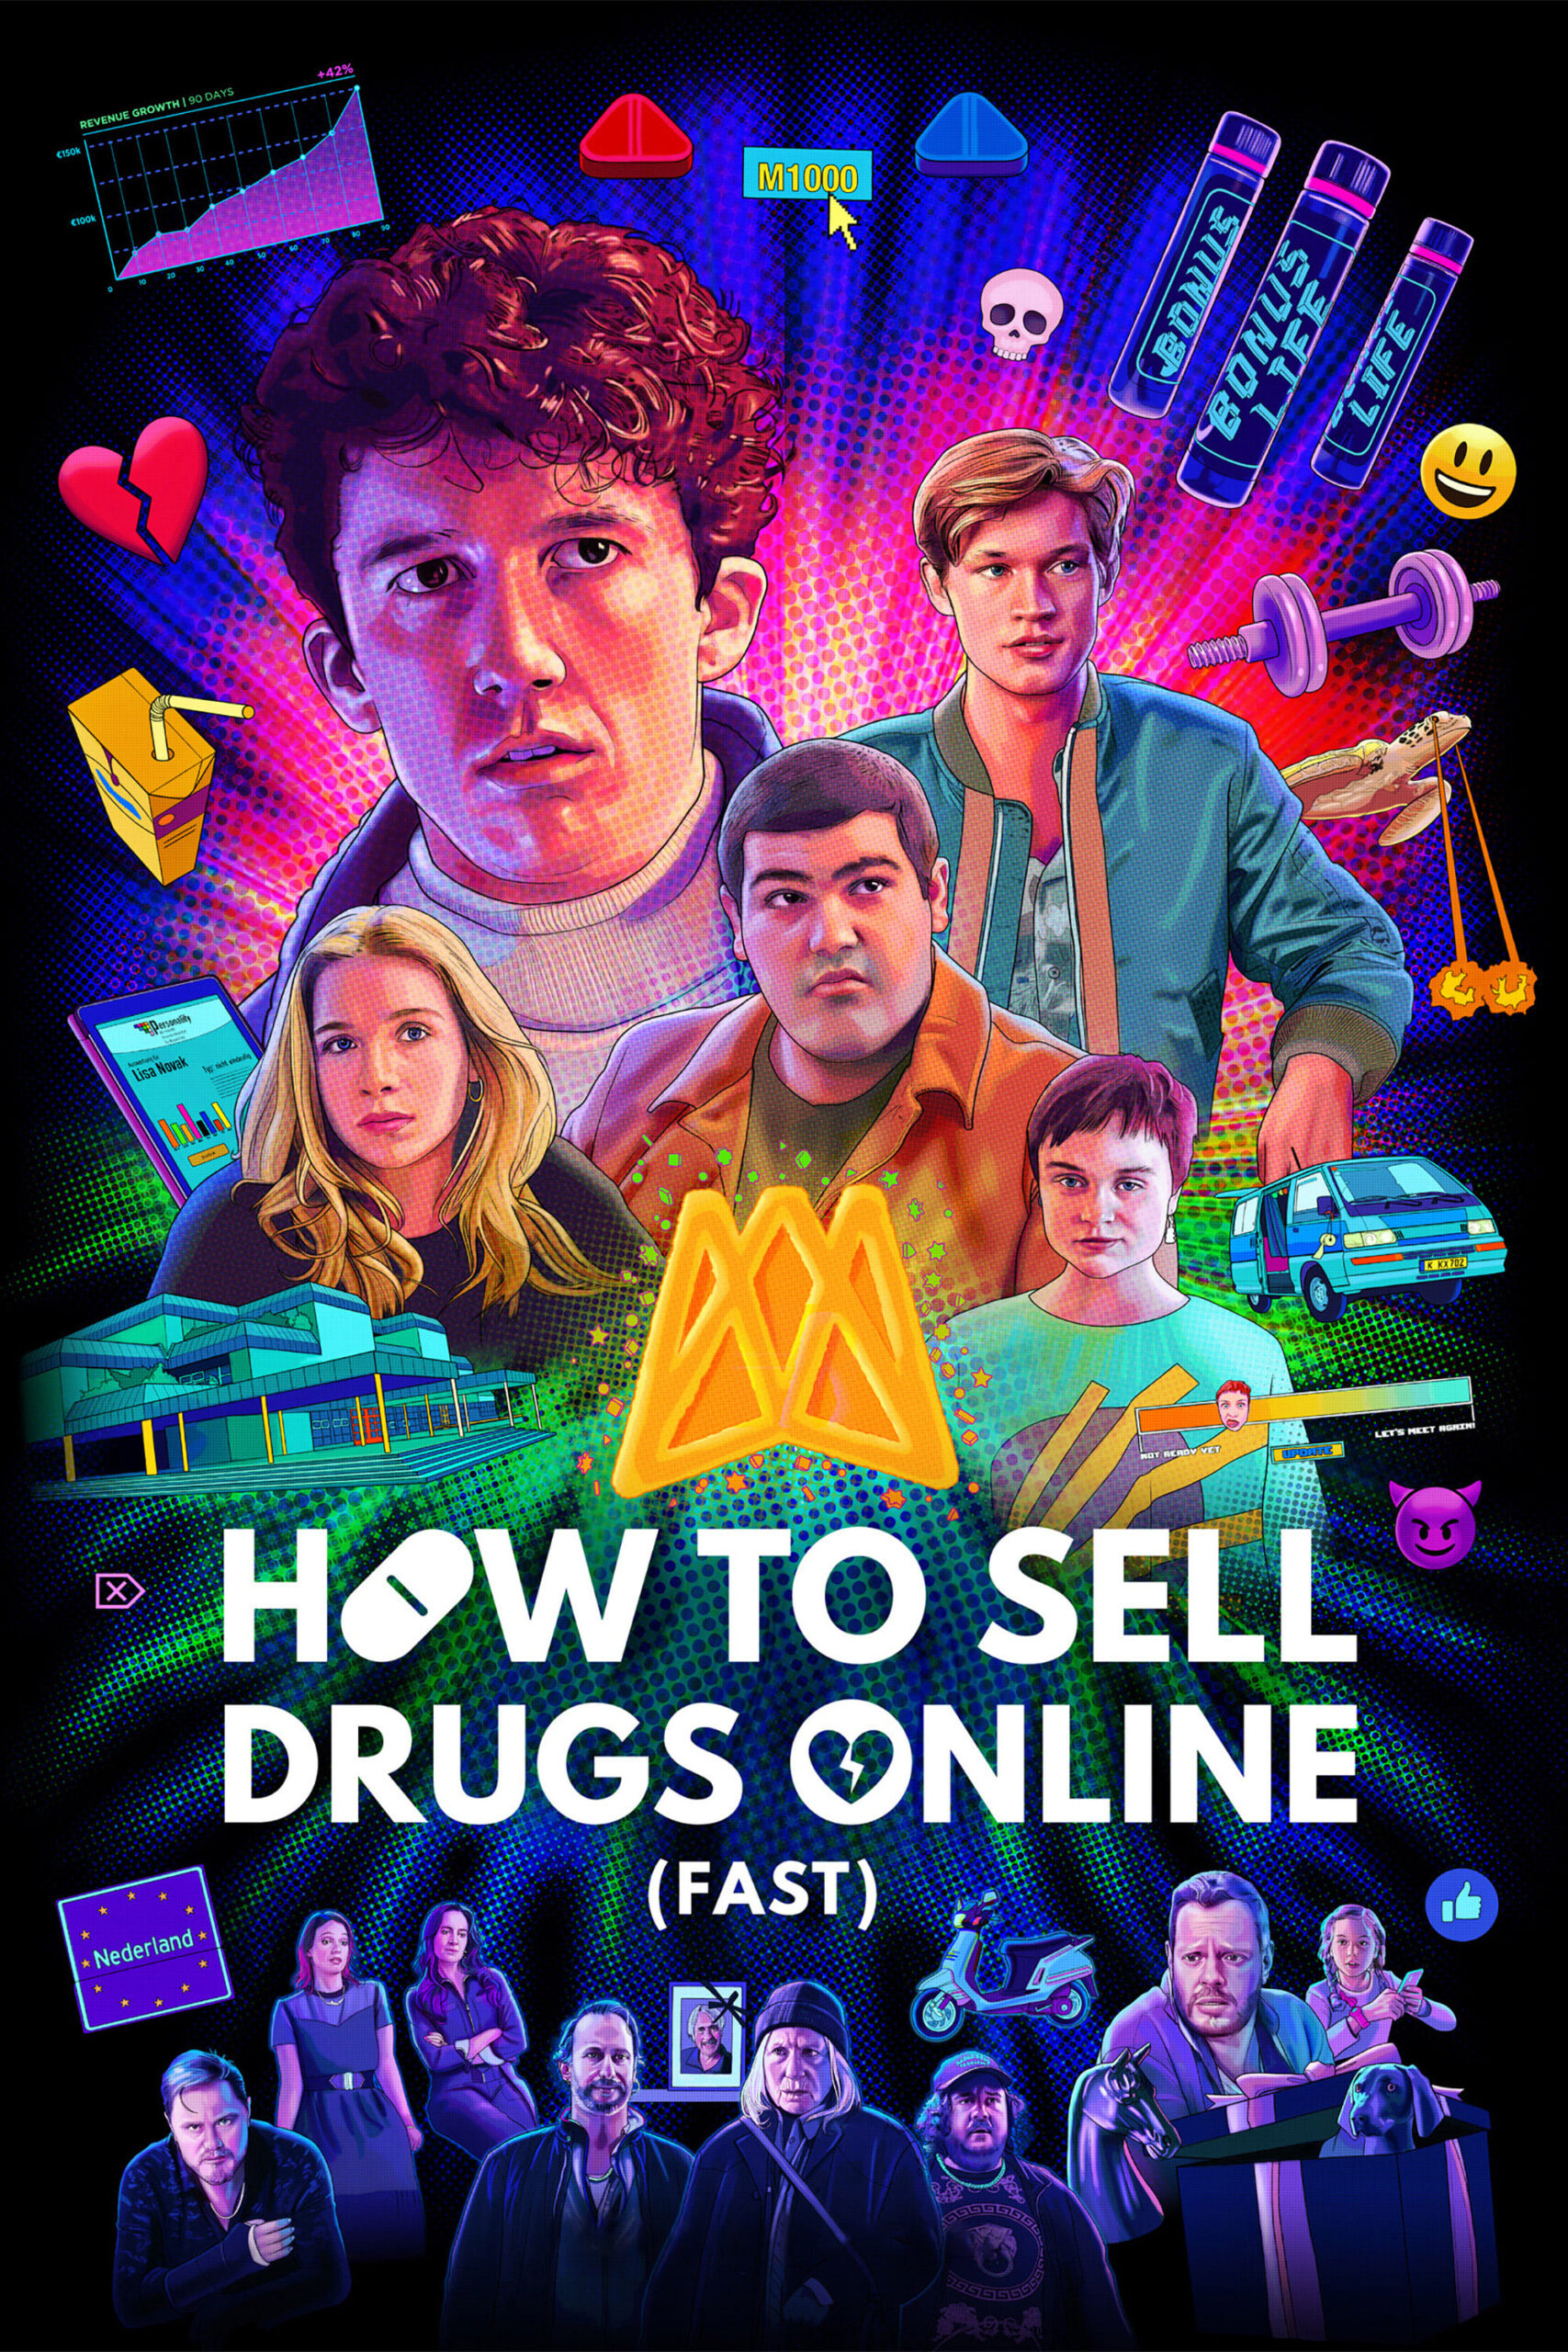 Watch How to Sell Drugs Online (Fast) Season 3 online now on Netflix cast review release date hero heroine hit or flop